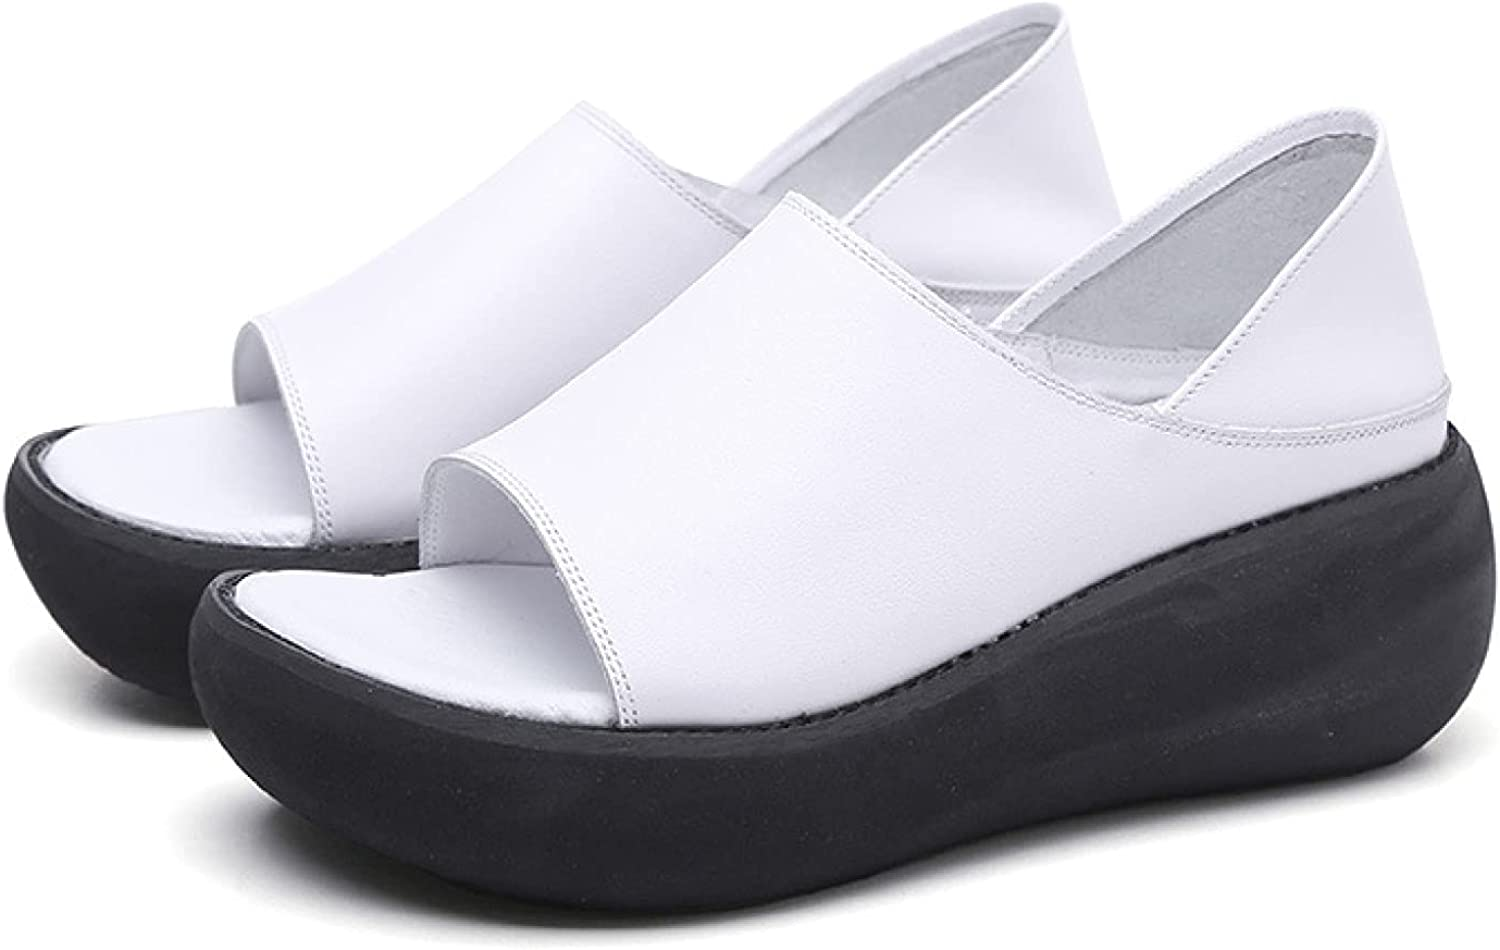 Platform Sandals for Woman Vacation Minneapolis Mall Super popular specialty store Open Slip Leather On Lad Toe